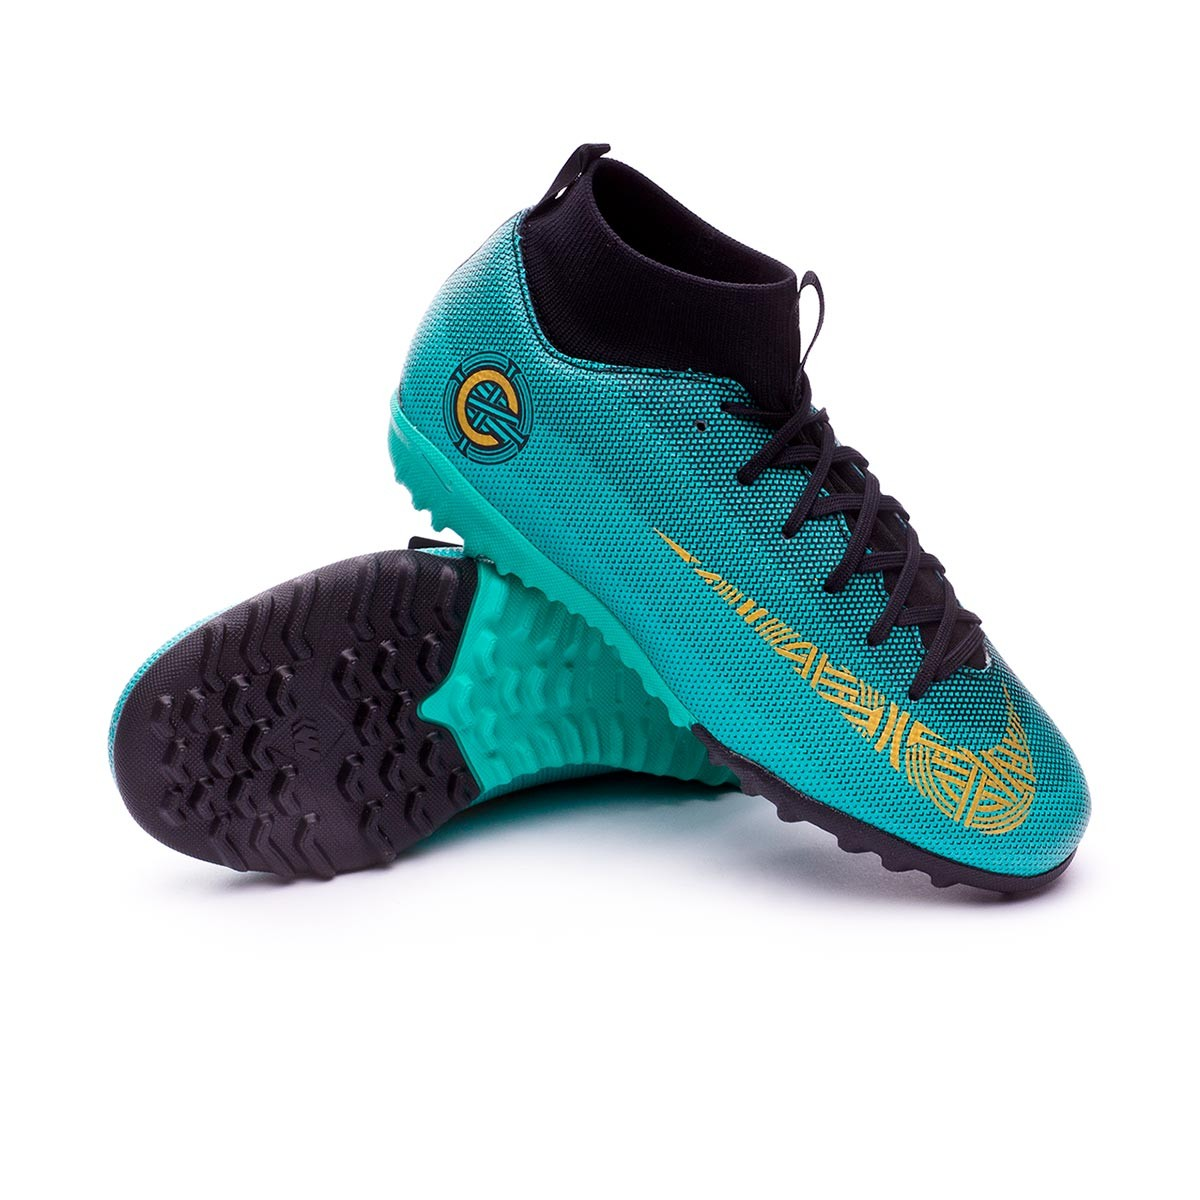 2123472b5f71e Tenis Nike Mercurial Superfly VI Academy GS CR7 Turf Niño Clear  jade-Metallic vivid gold-Black - Tienda de fútbol Fútbol Emotion